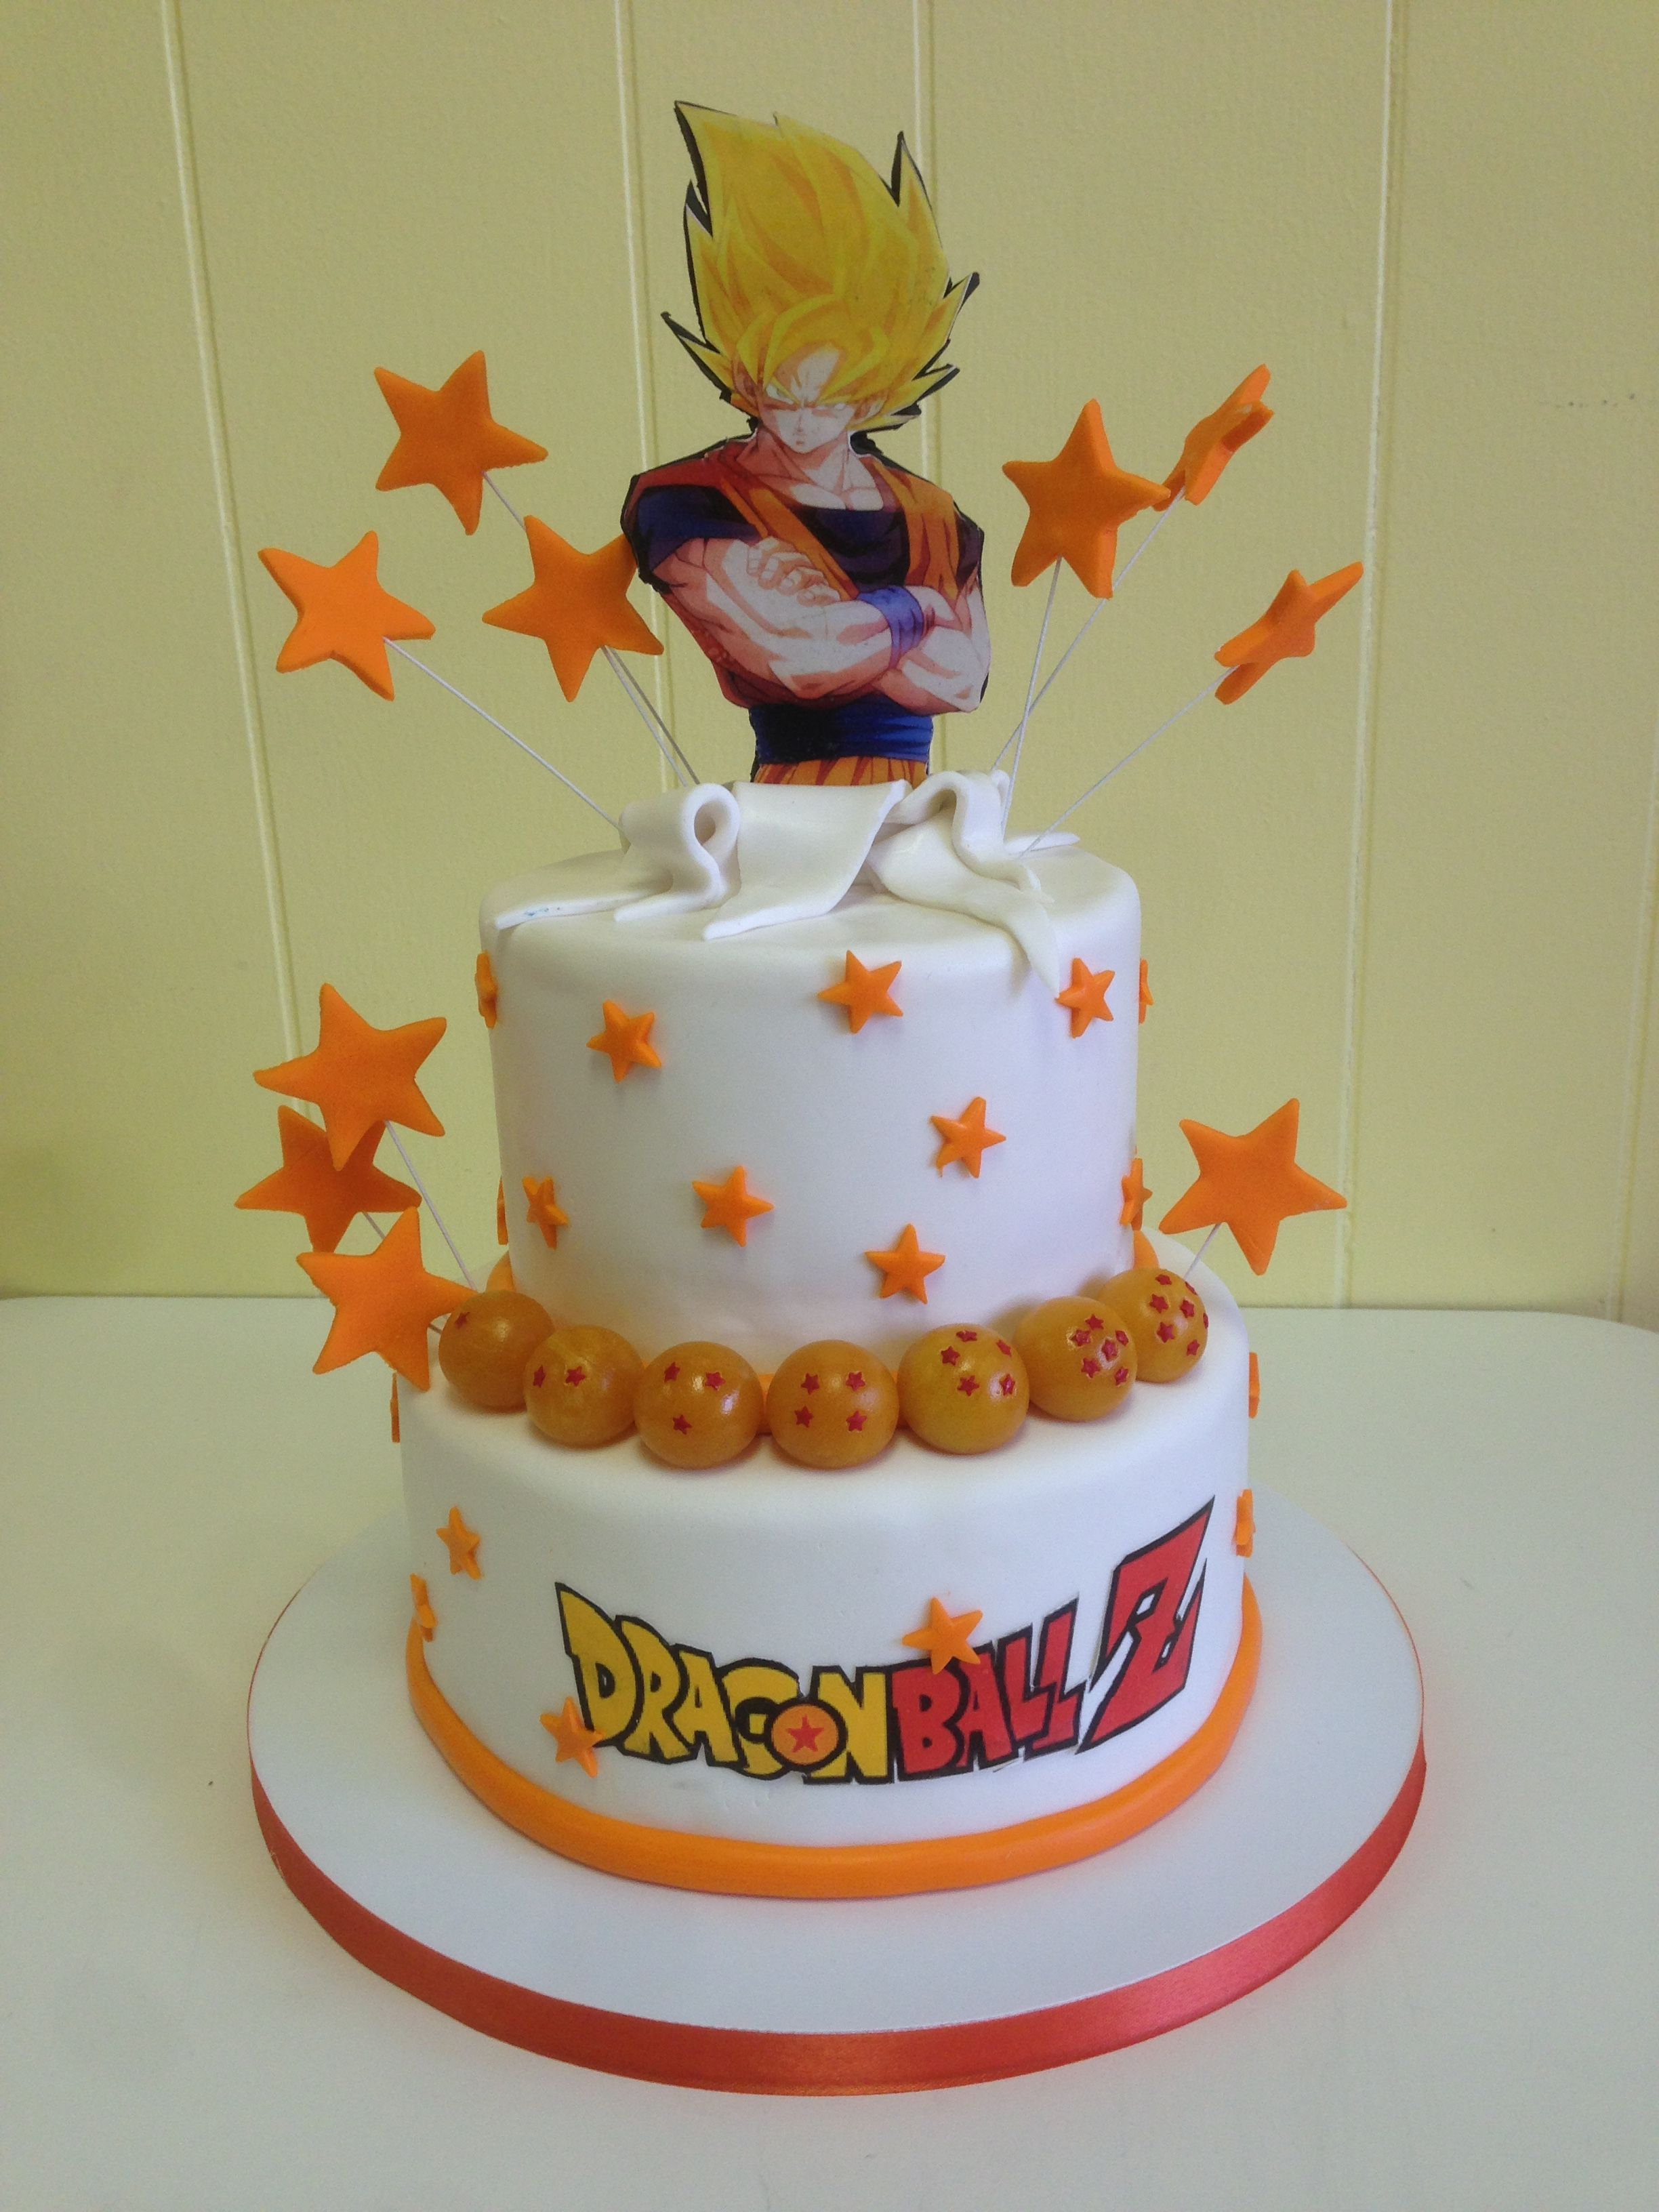 Dragonball Z Cake By The Lady In Fort Pierce Florida